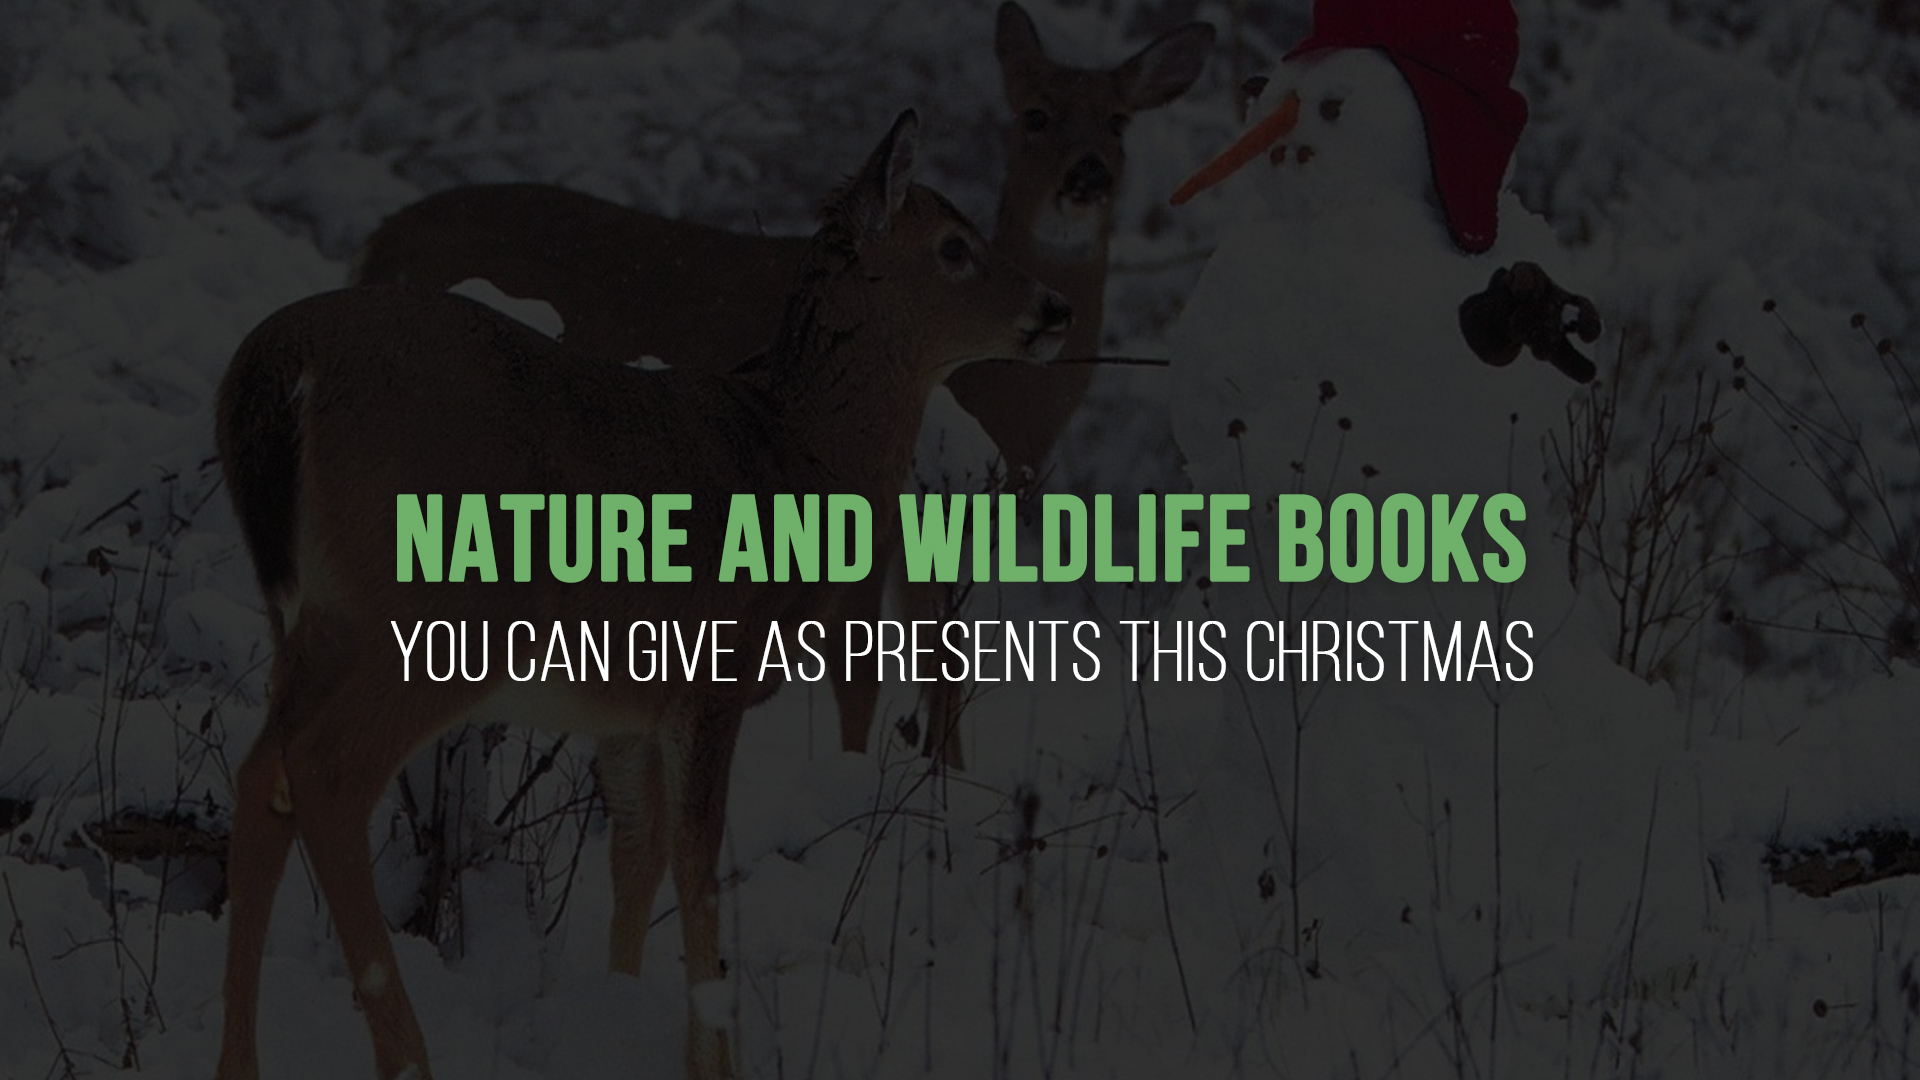 Nature and Wildlife Books You Can Give as Presents this Christmas banner